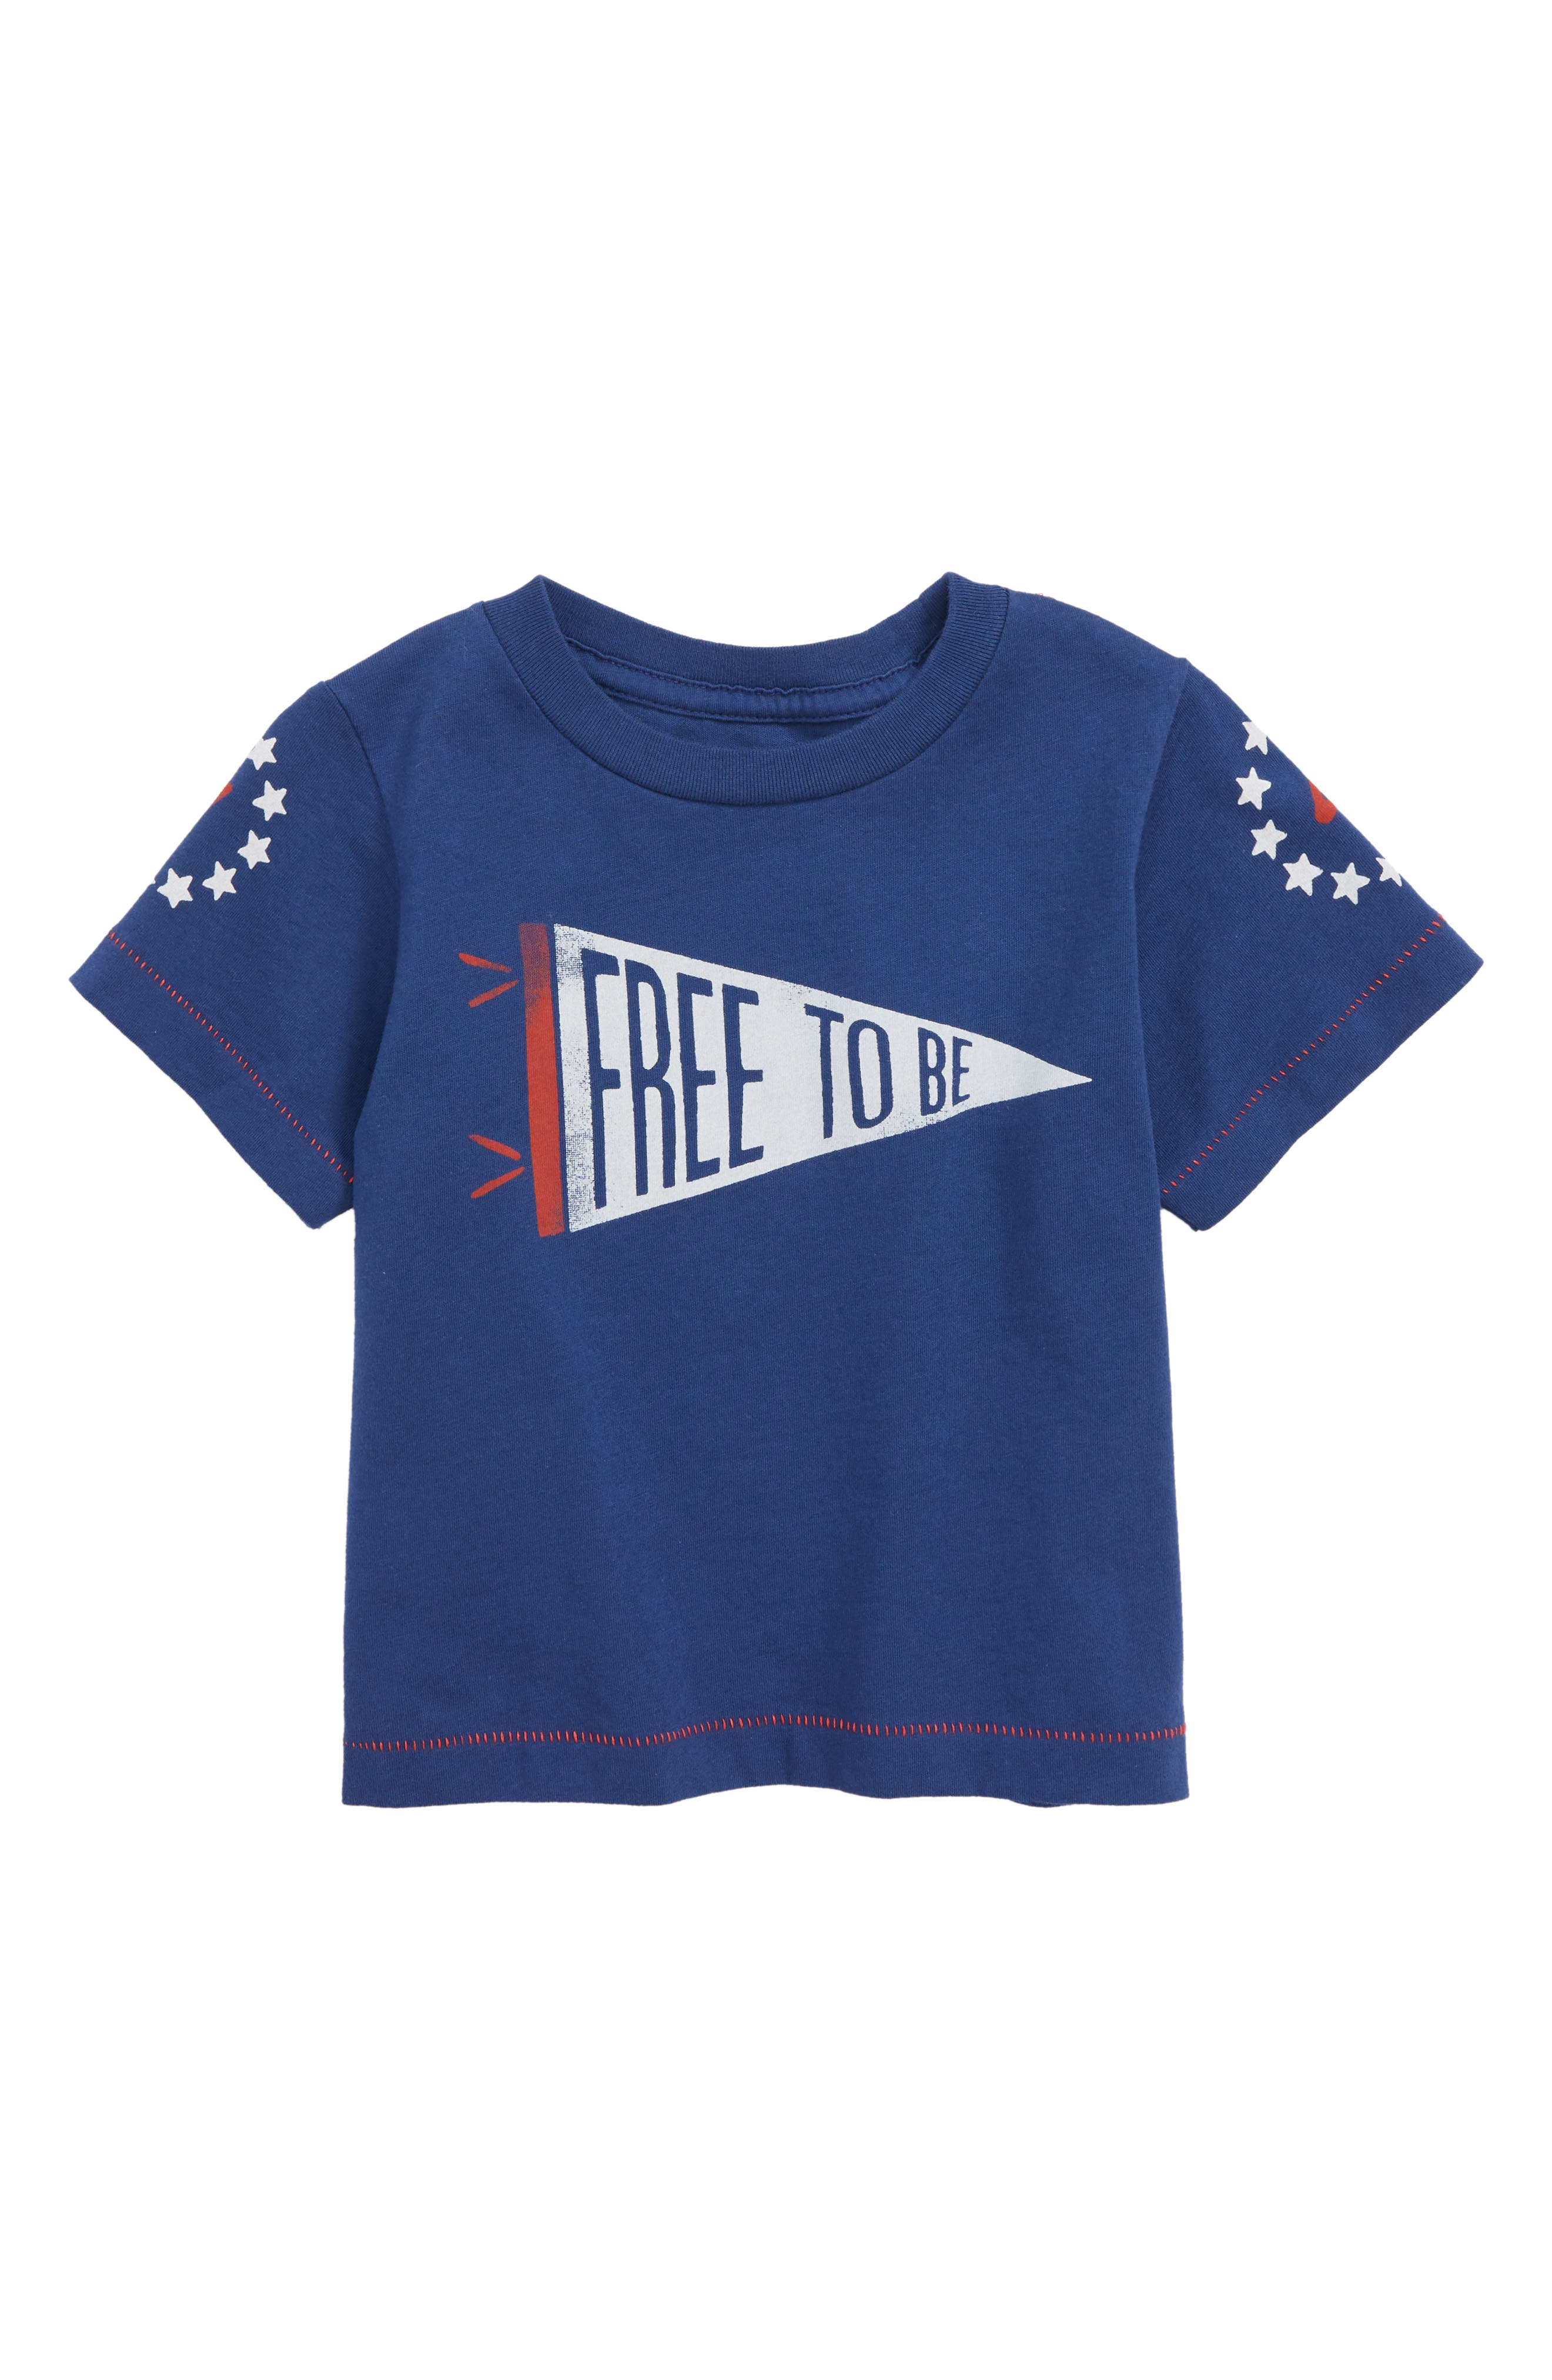 Free to Be T-Shirt,                         Main,                         color, Navy